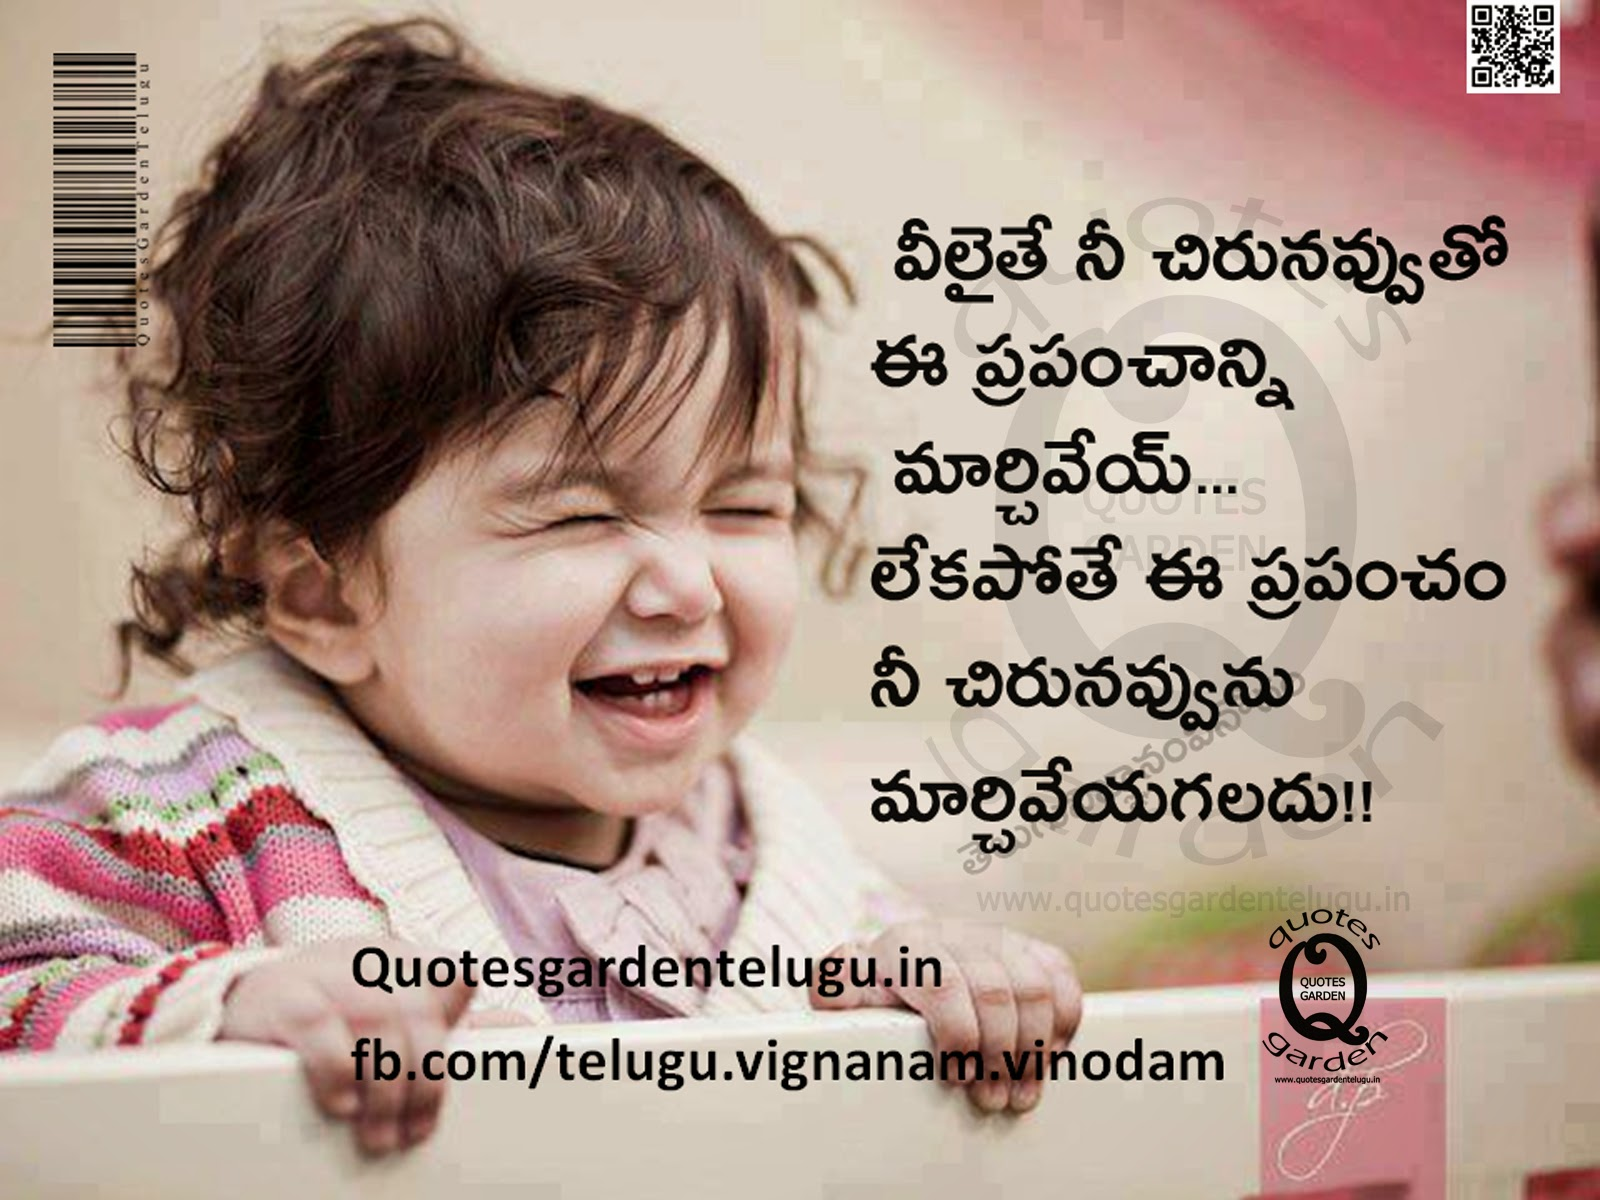 Top Telugu Quotations Friends Wallpapers